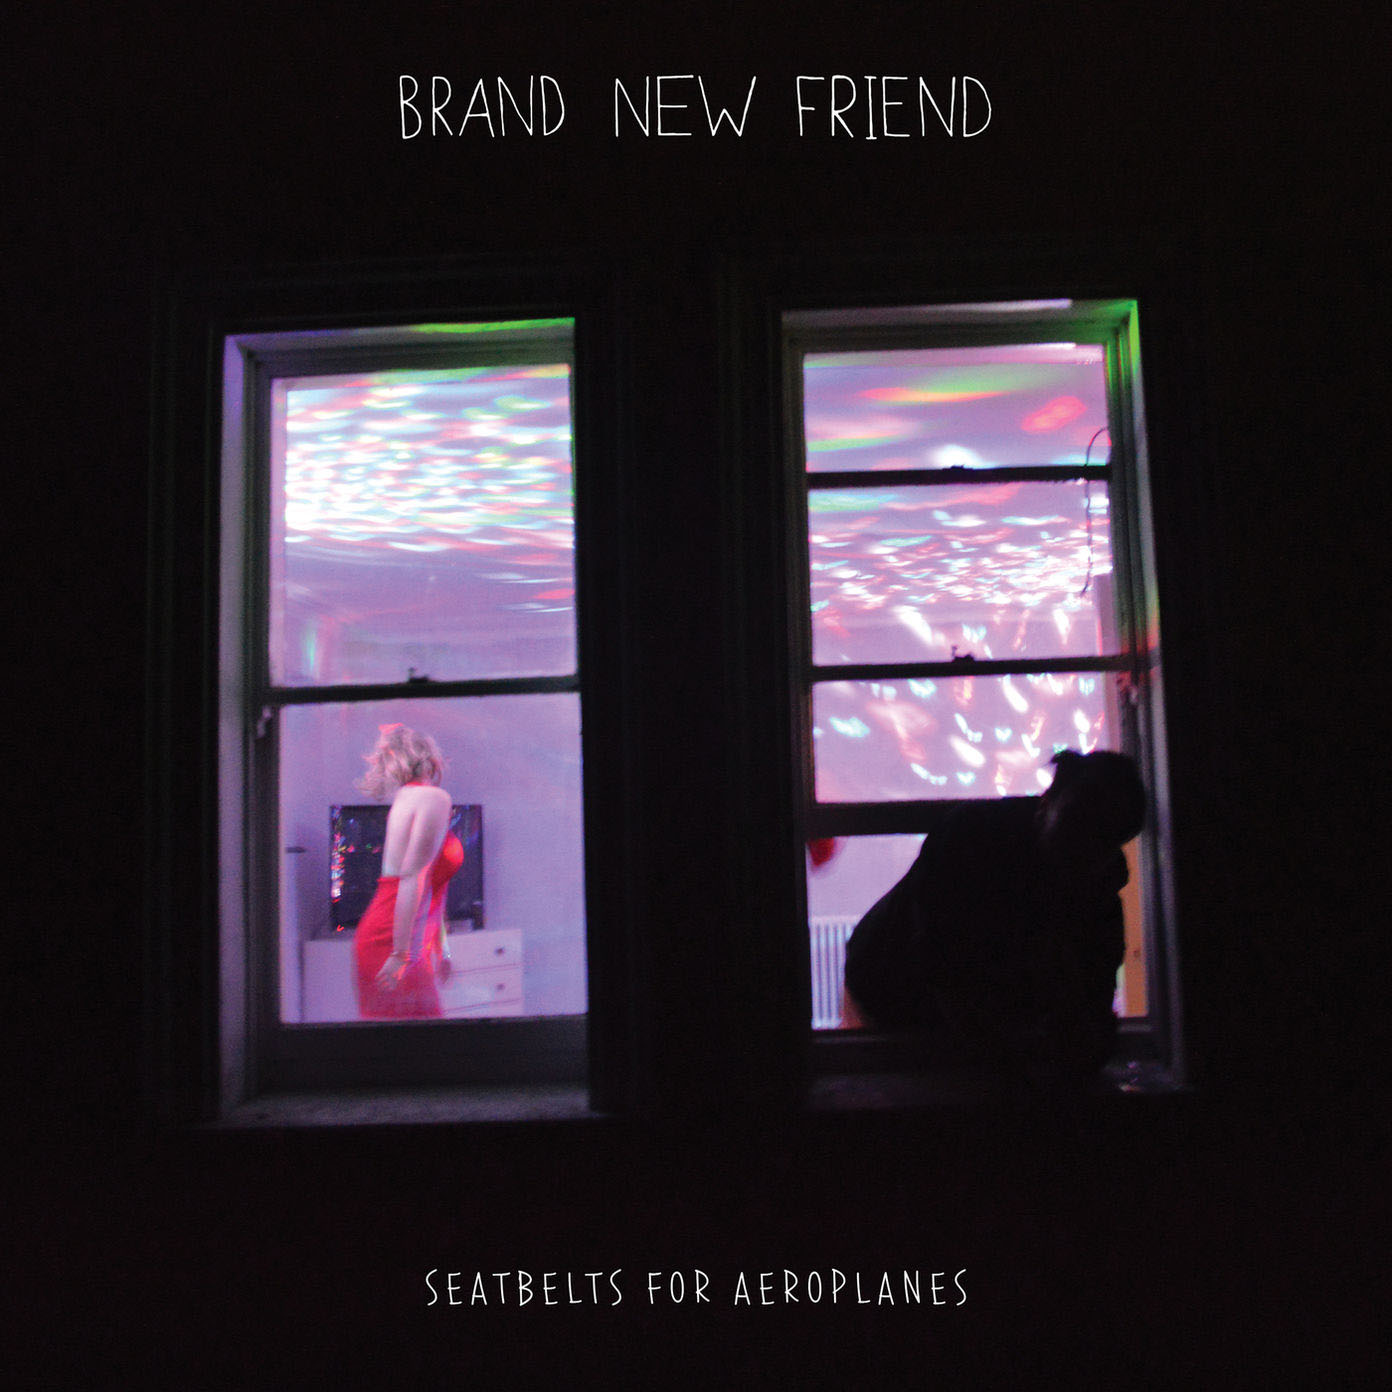 Seatbelts for Aeroplanes by Brand New Friend